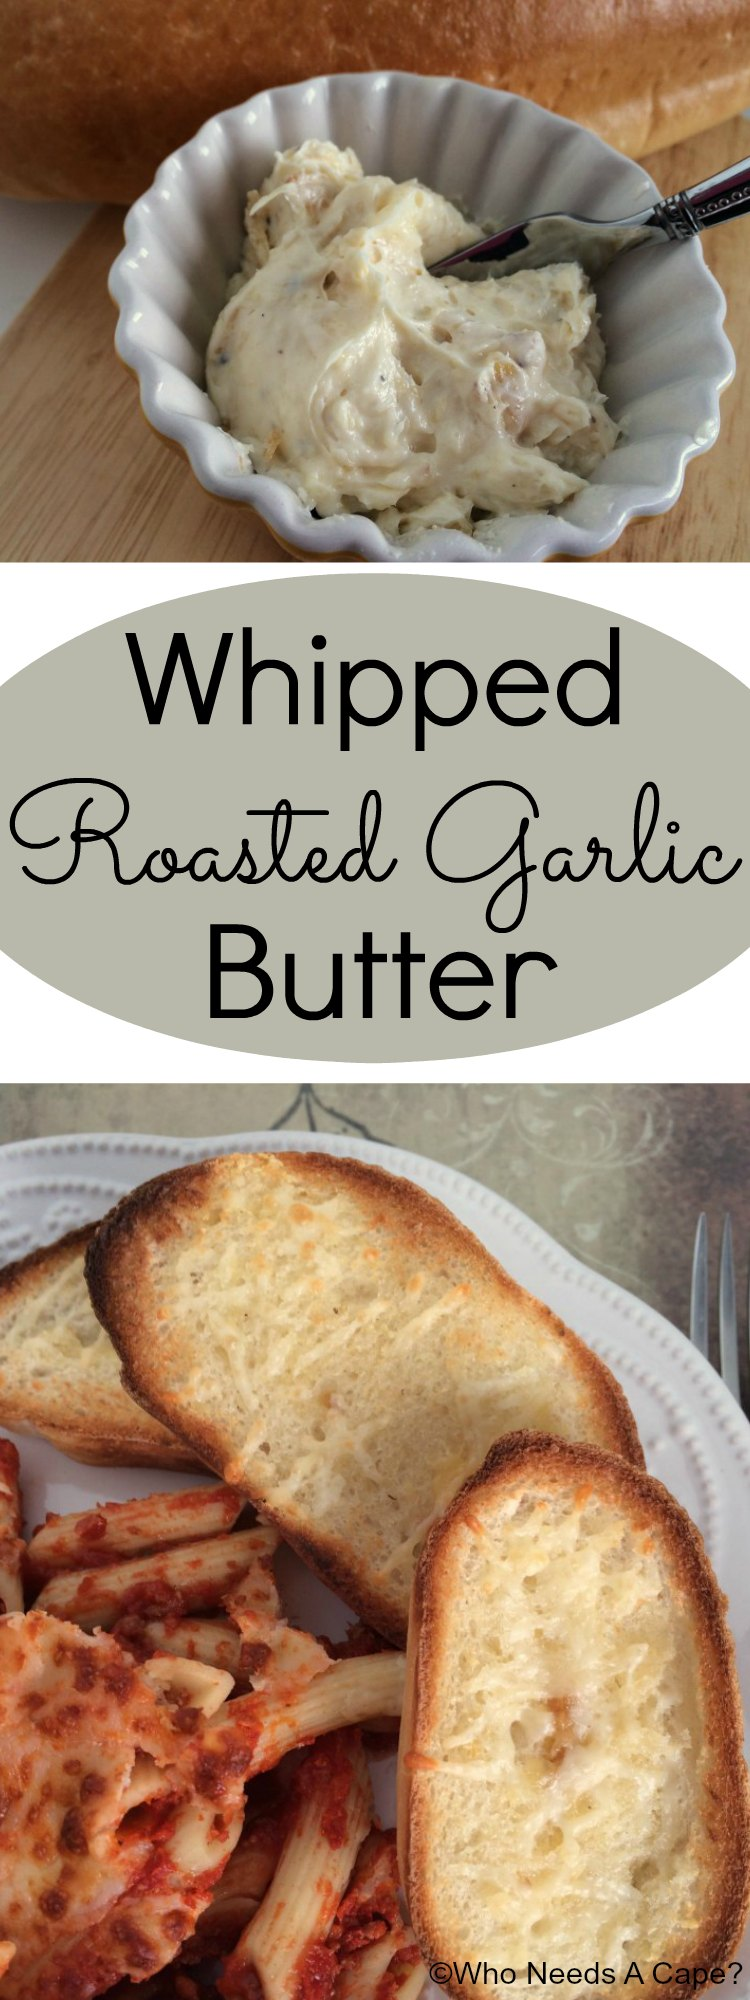 Whipped Roasted Garlic Butter leads to the most delicious garlic bread ever! So simple to prepare and much better than store bought garlic spreads!